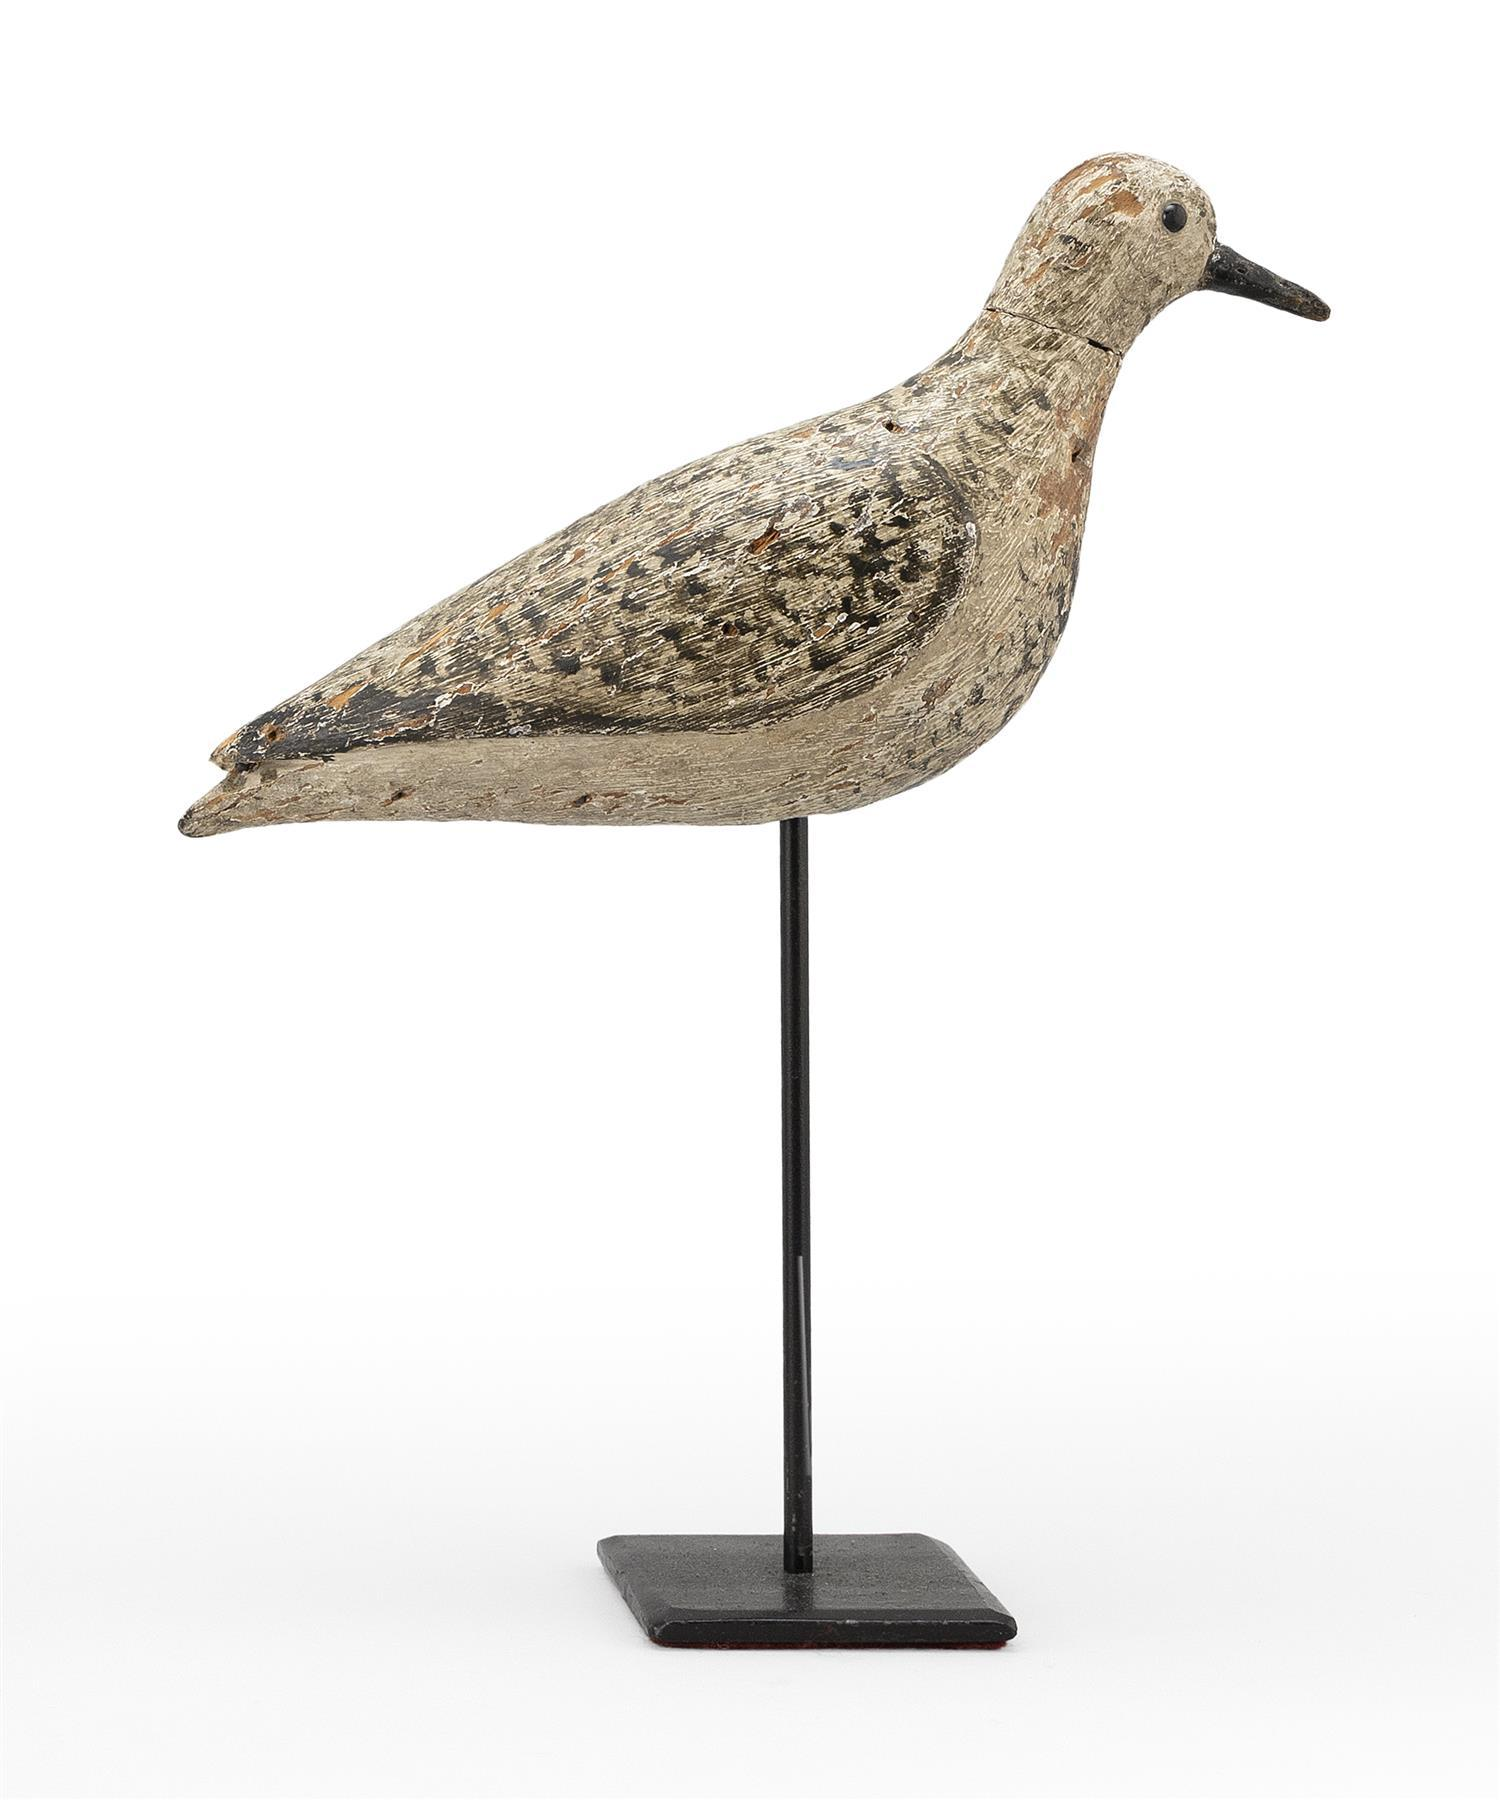 "MASSACHUSETTS GOLDEN PLOVER DECOY Glass eyes. Original paint with gunning wear. Carved wing detail. Length 11"". Ex-Collection: Hillman."